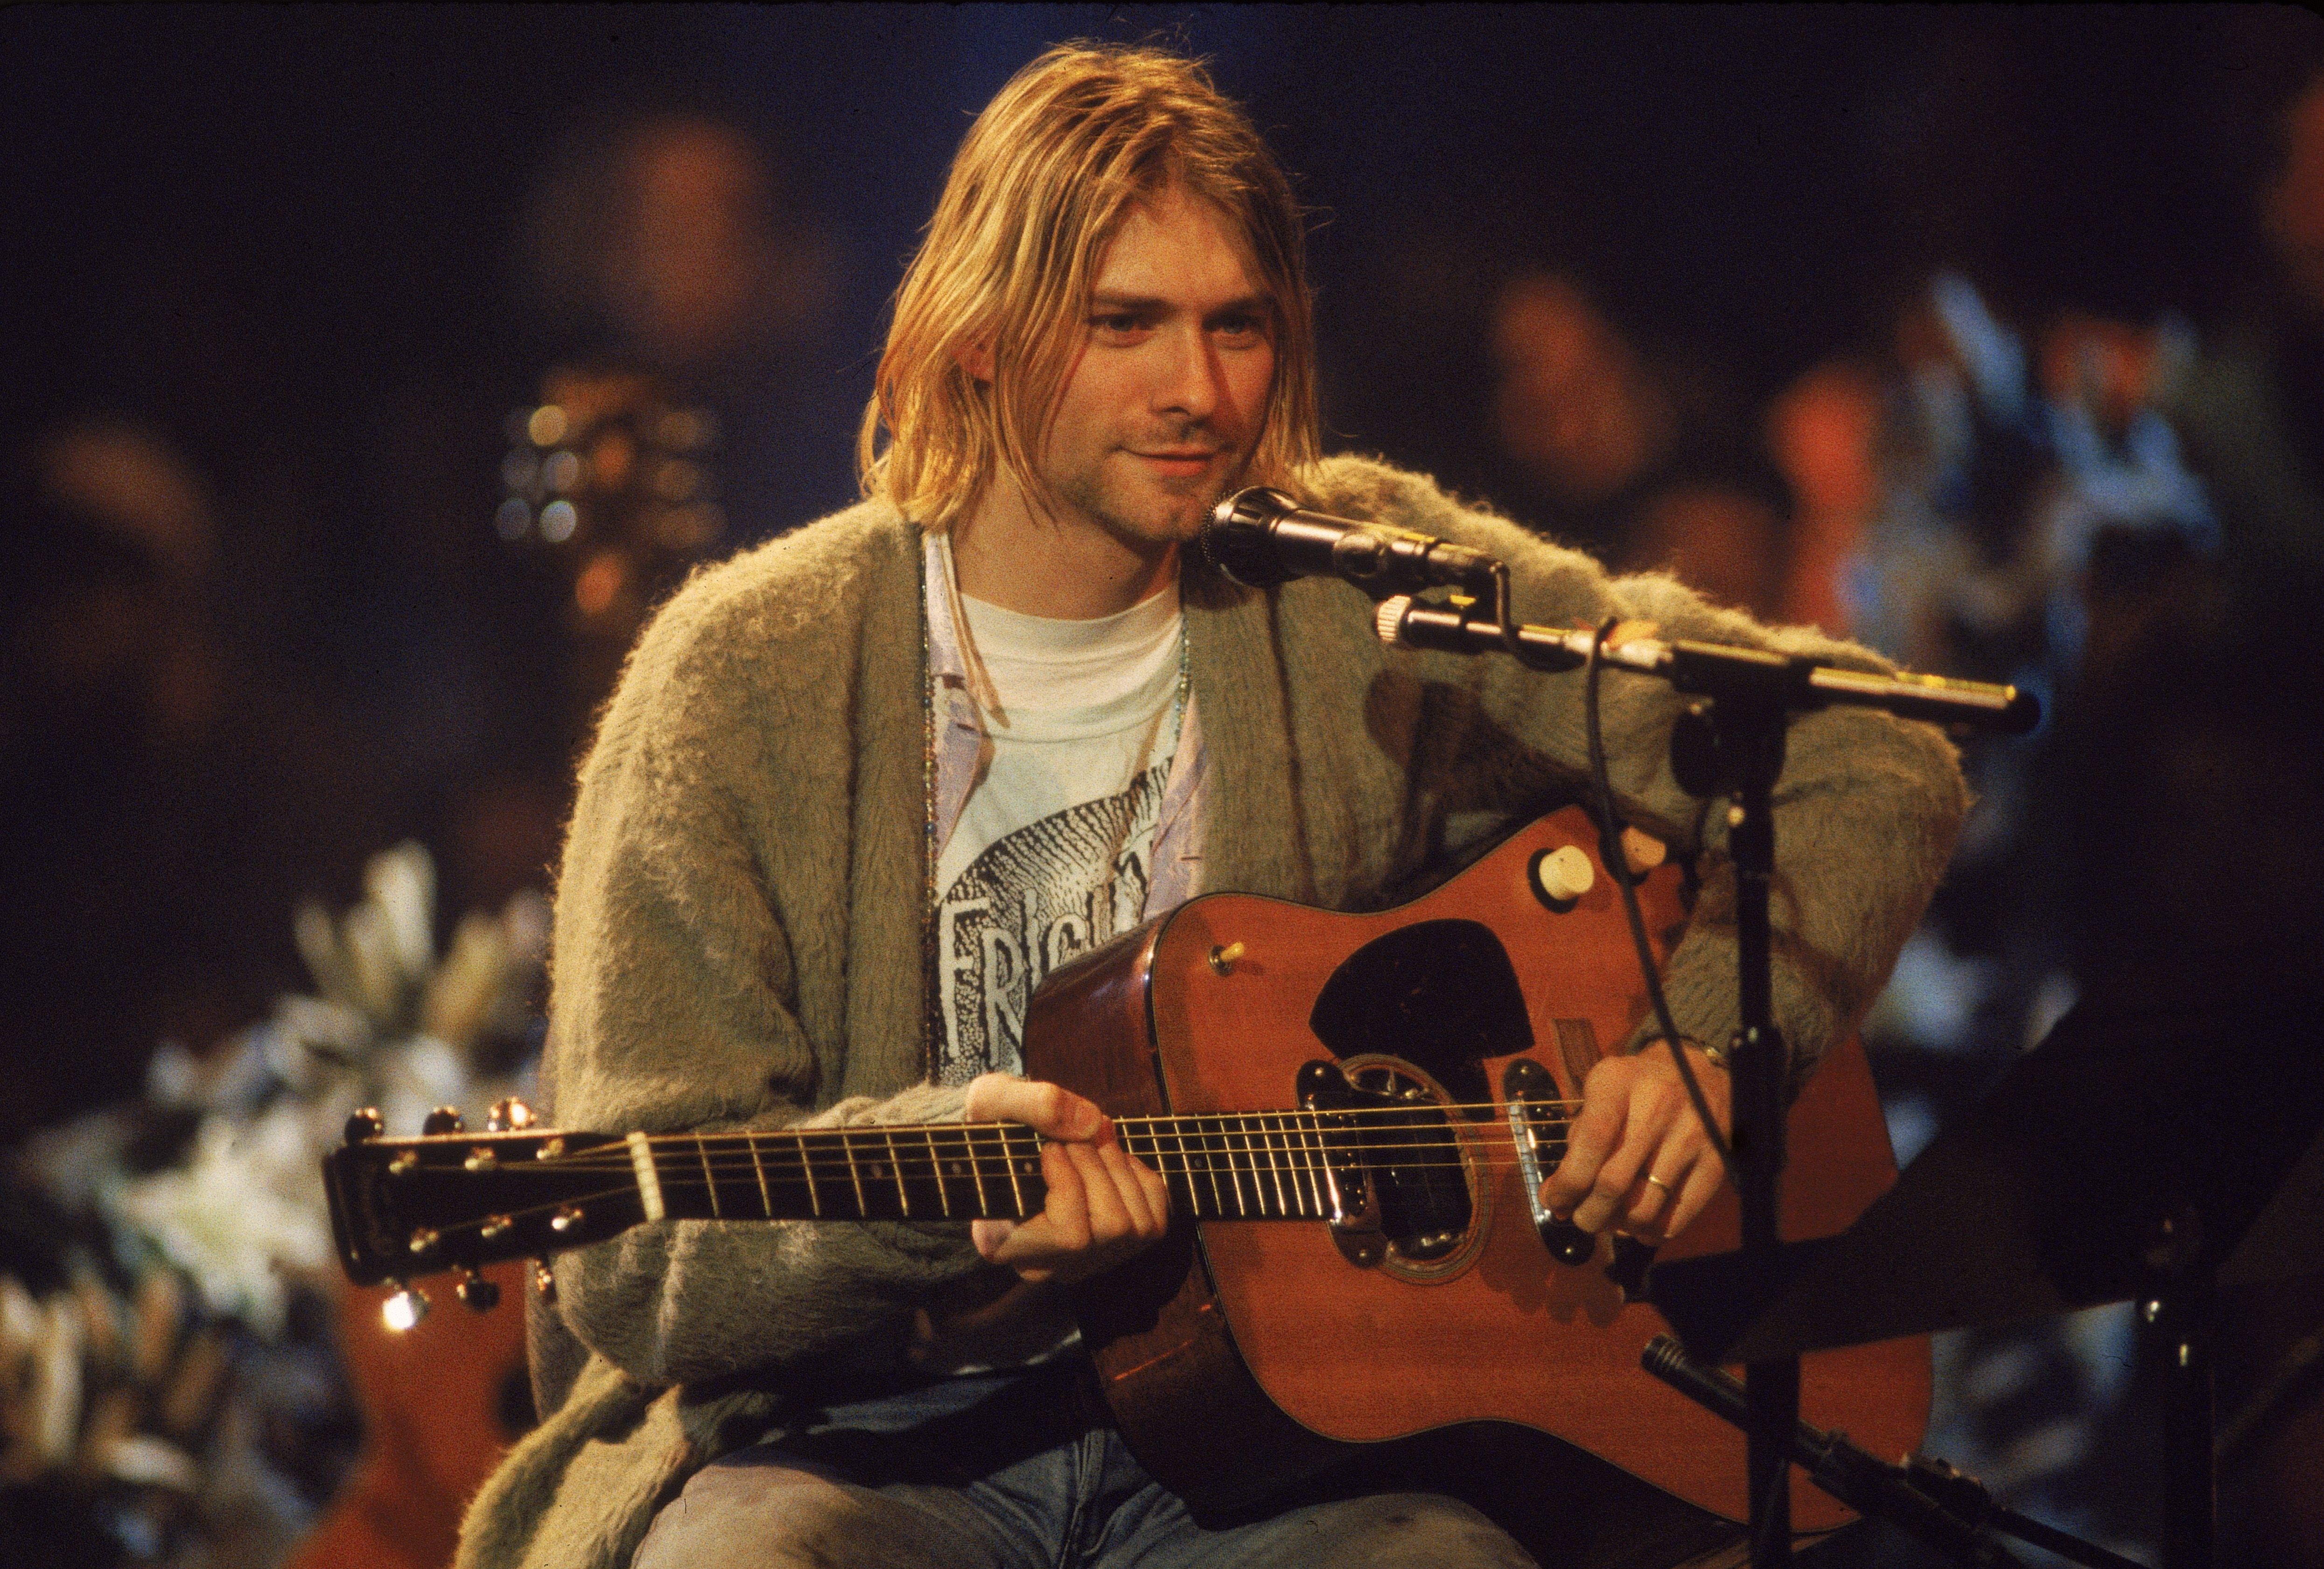 Kurt Cobain on 'MTV Unplugged,' in November 1993 in New York | Source: Getty Images